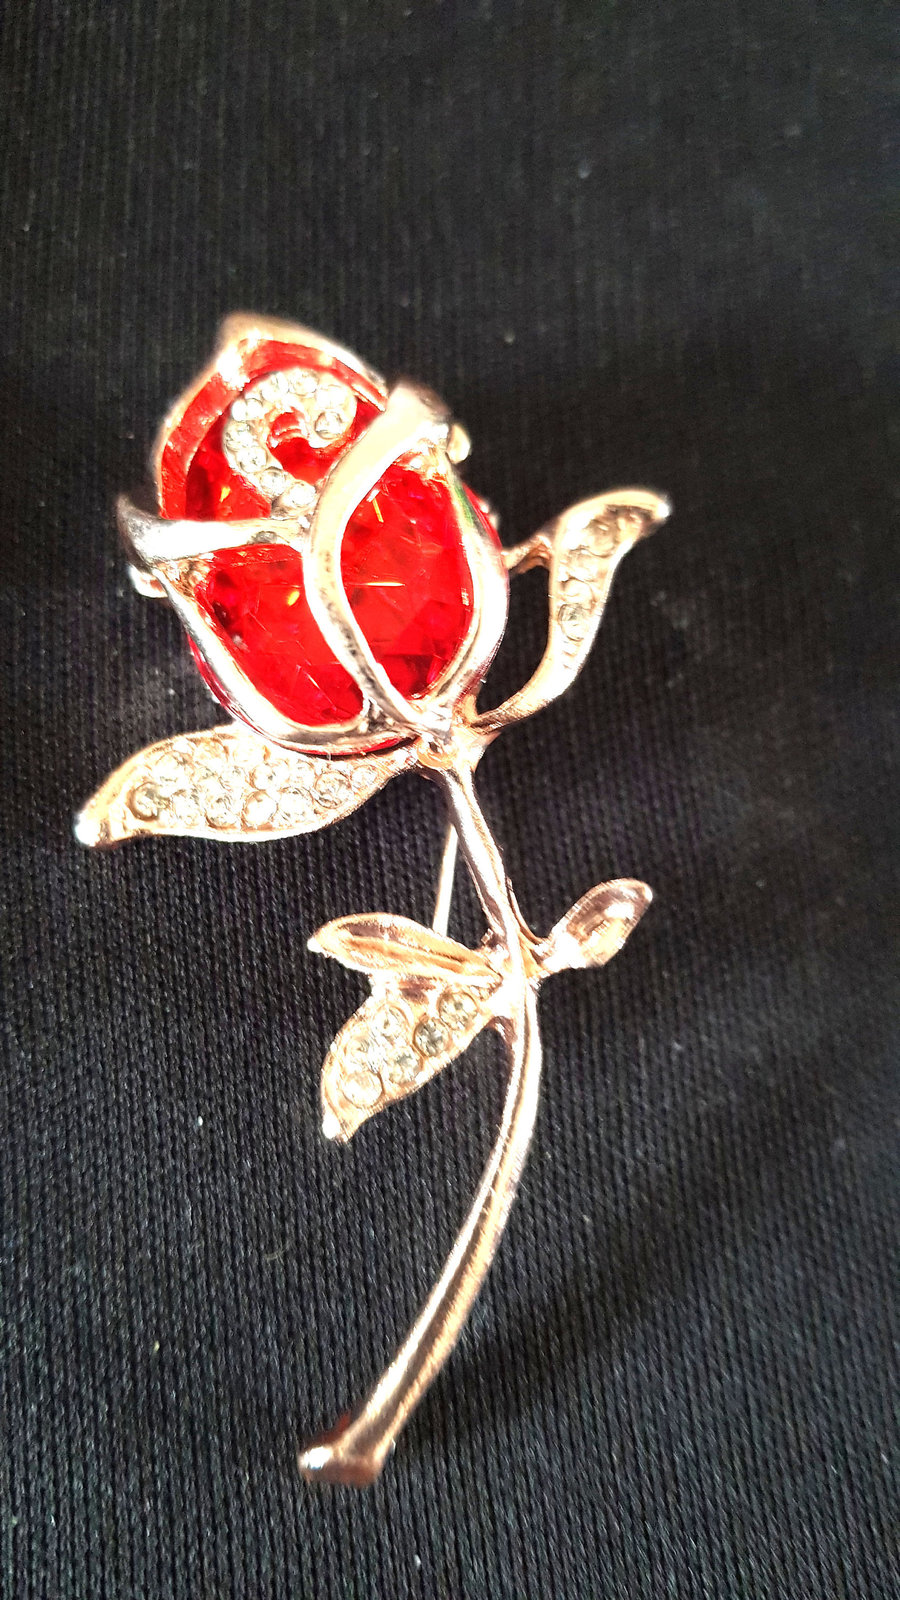 gold and crystals red rose Brooch with brooch safety crossbar connection on rear